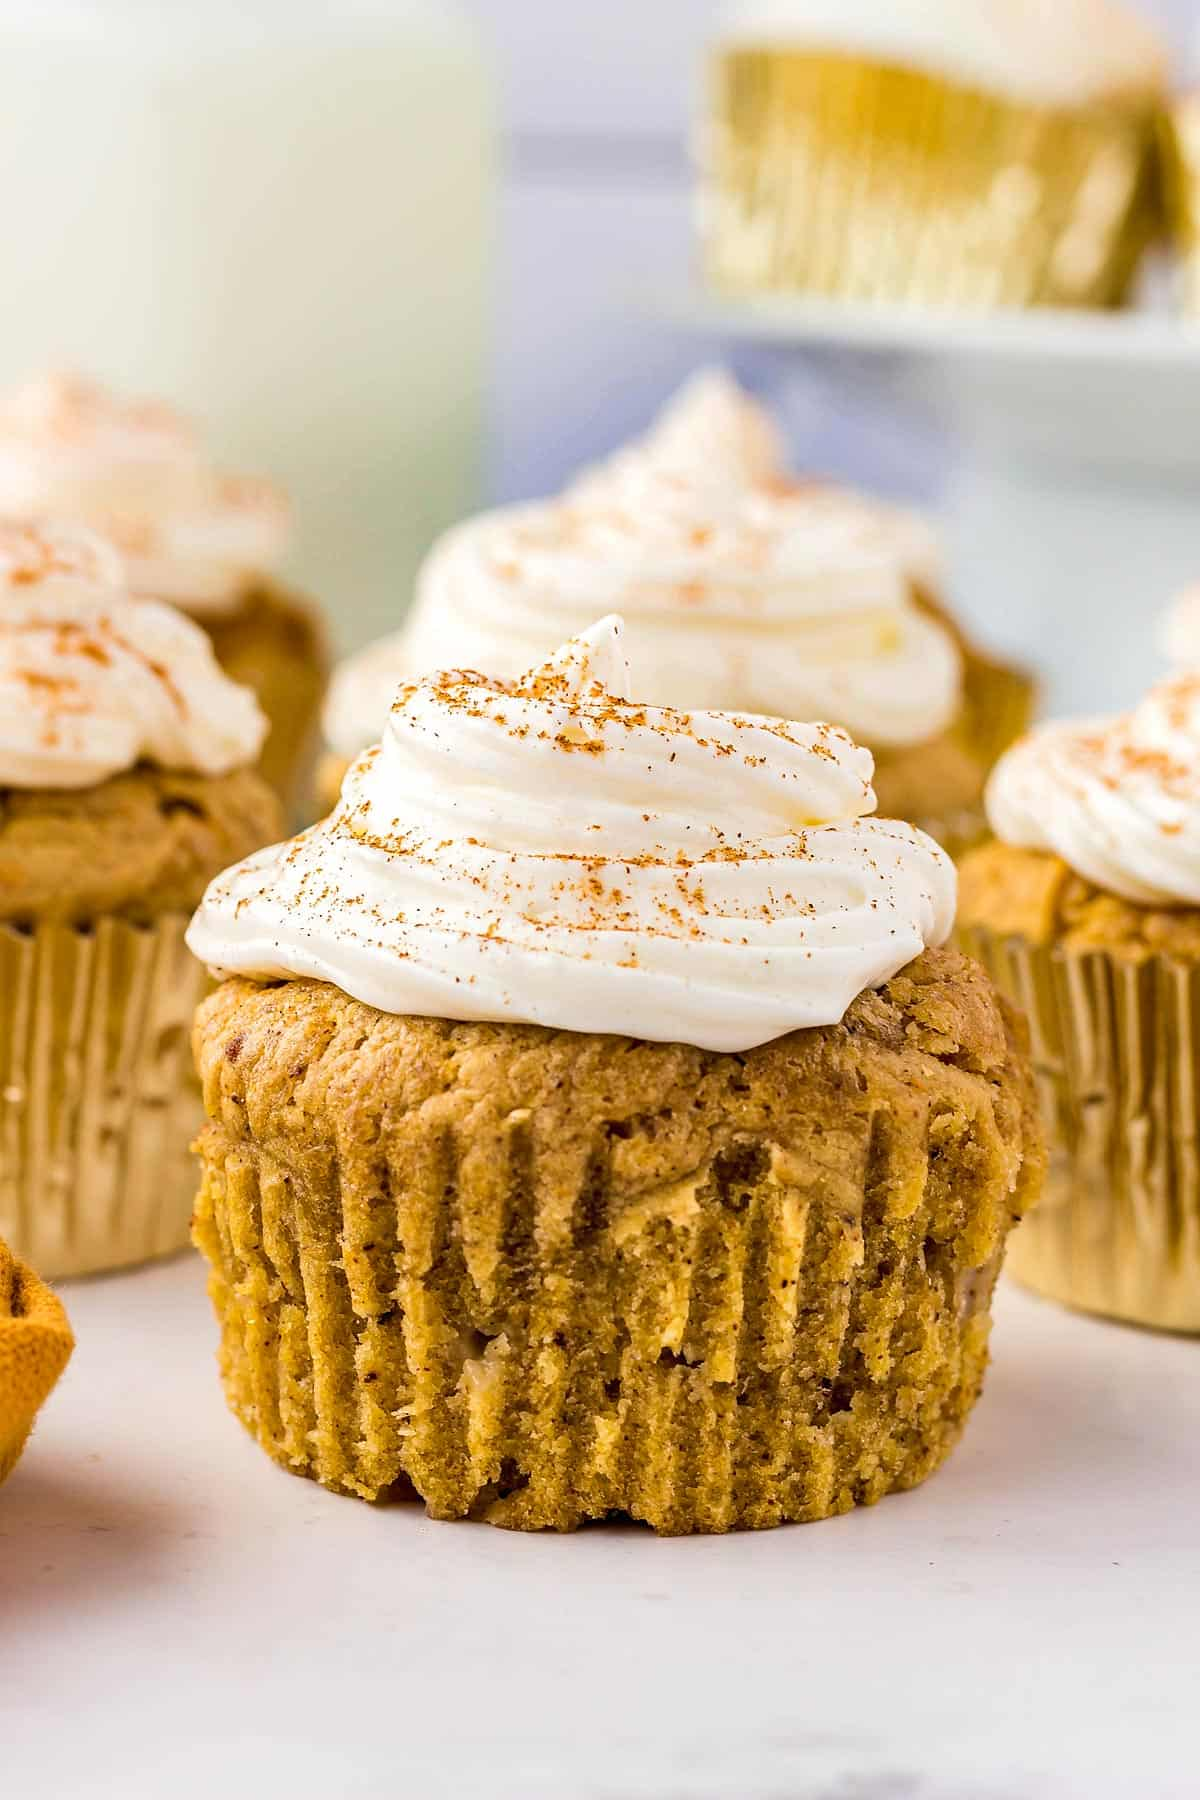 The Best Pumpkin Spice Cupcakes Recipe – Perfect for Fall!